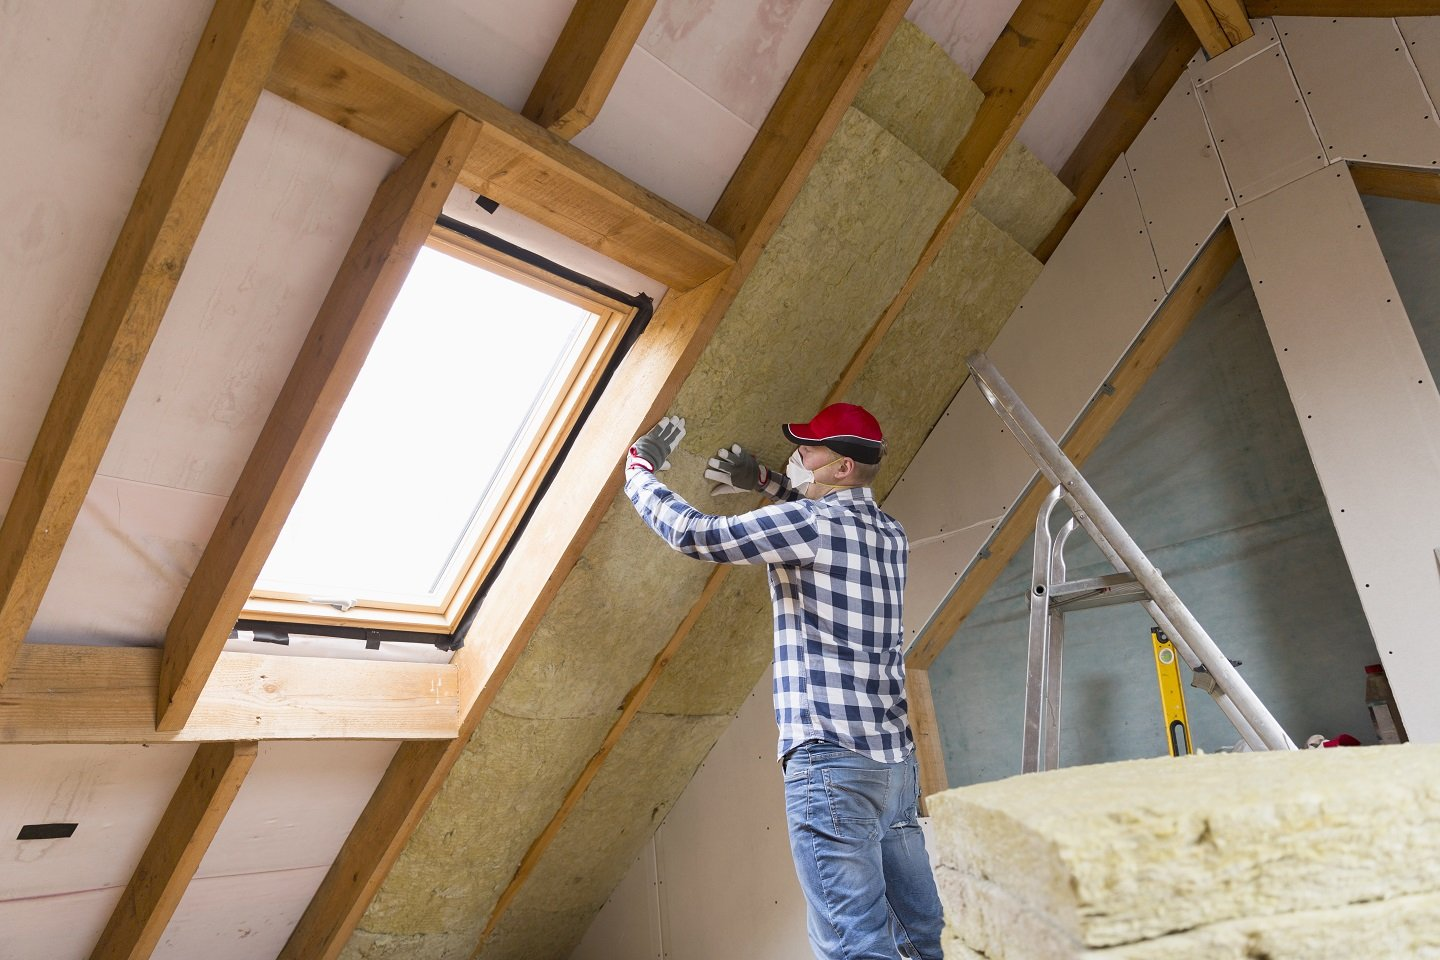 (A-One) The Importance of Roofing Insulation